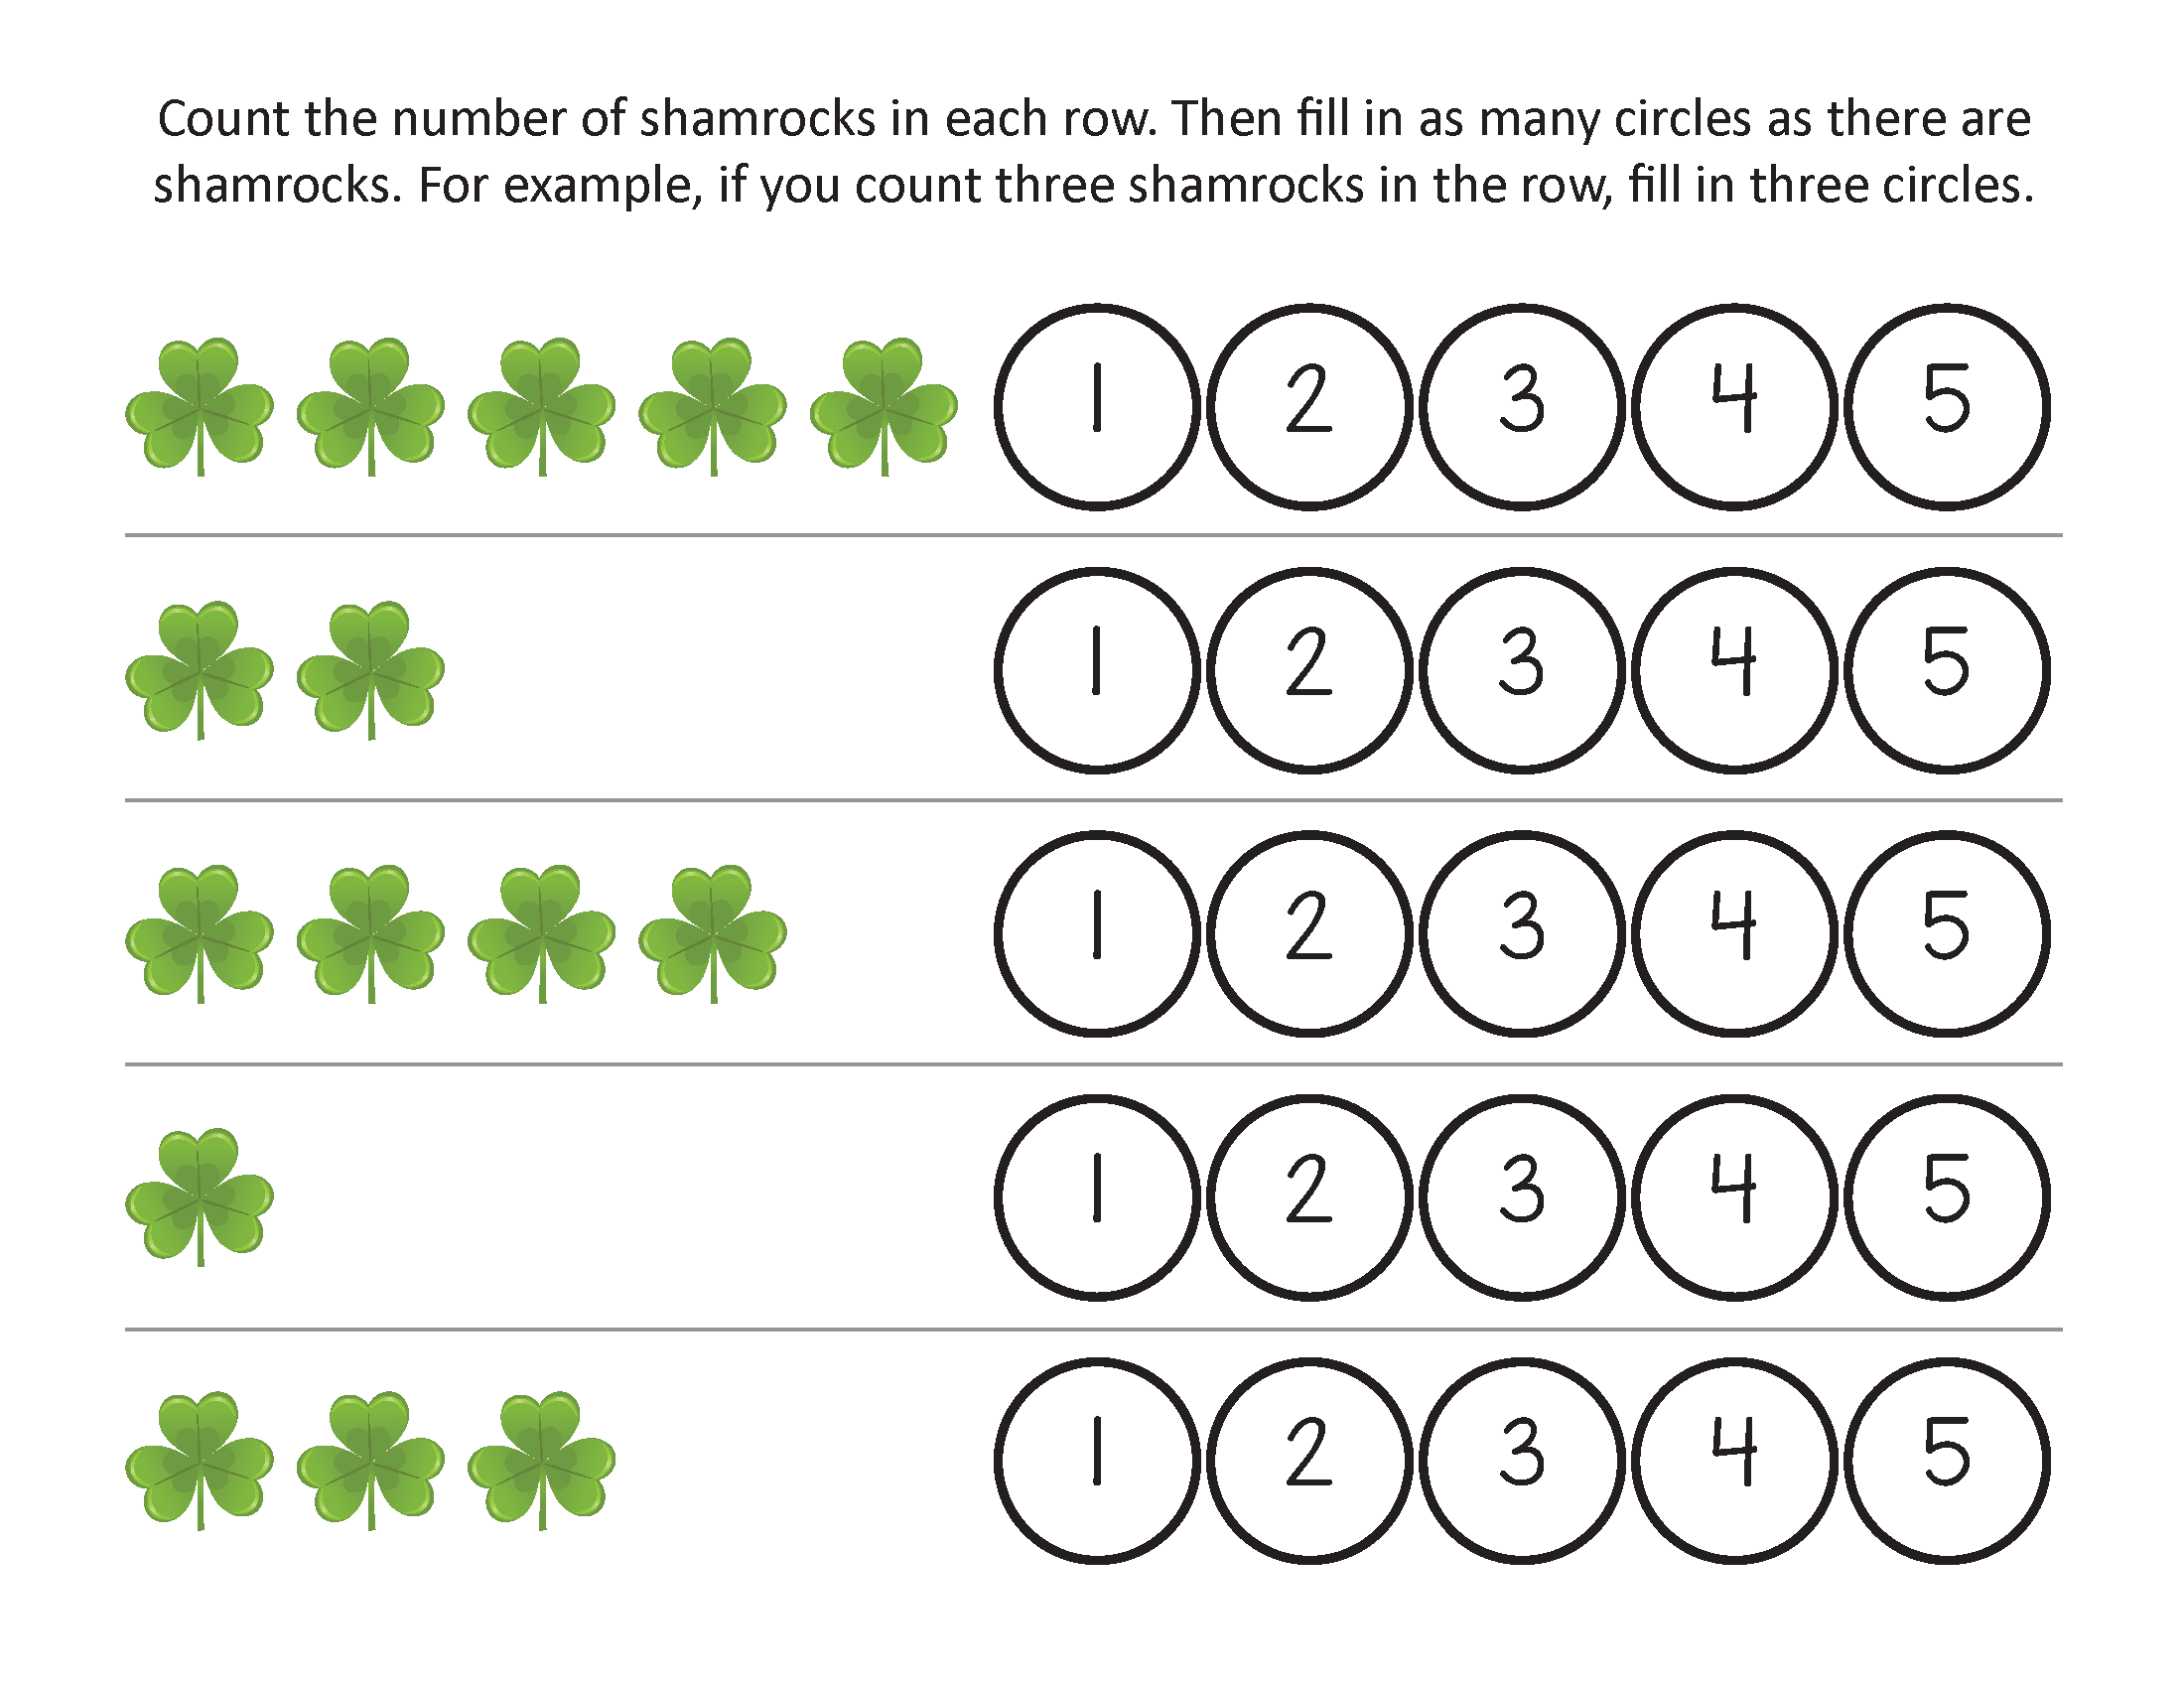 photo relating to St Patrick's Day Worksheets Free Printable identify St Patricks Working day Worksheets - Most straightforward Coloring Internet pages For Young children